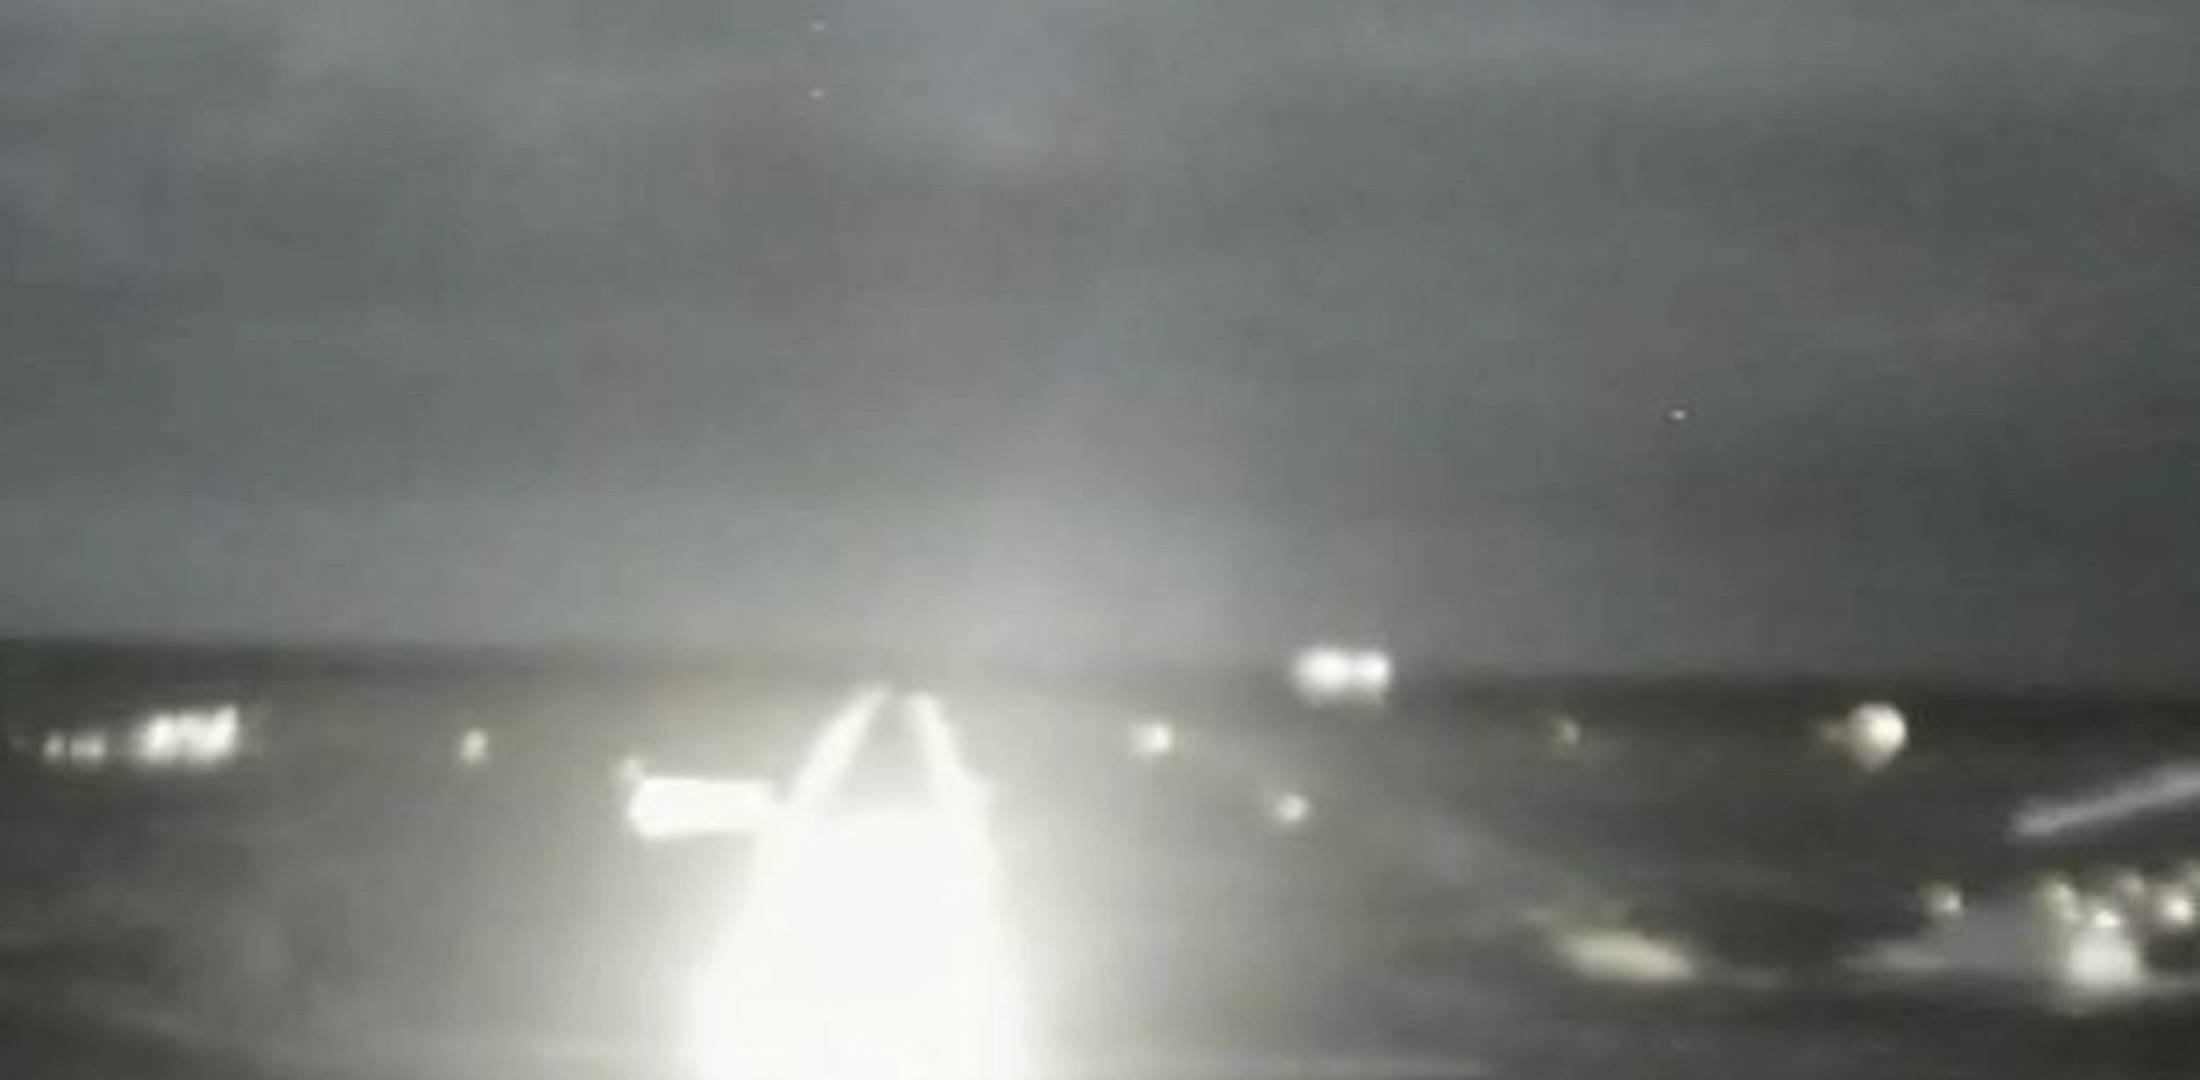 FAA, Industry Mull LED Airport Lighting Issues | Aerospace